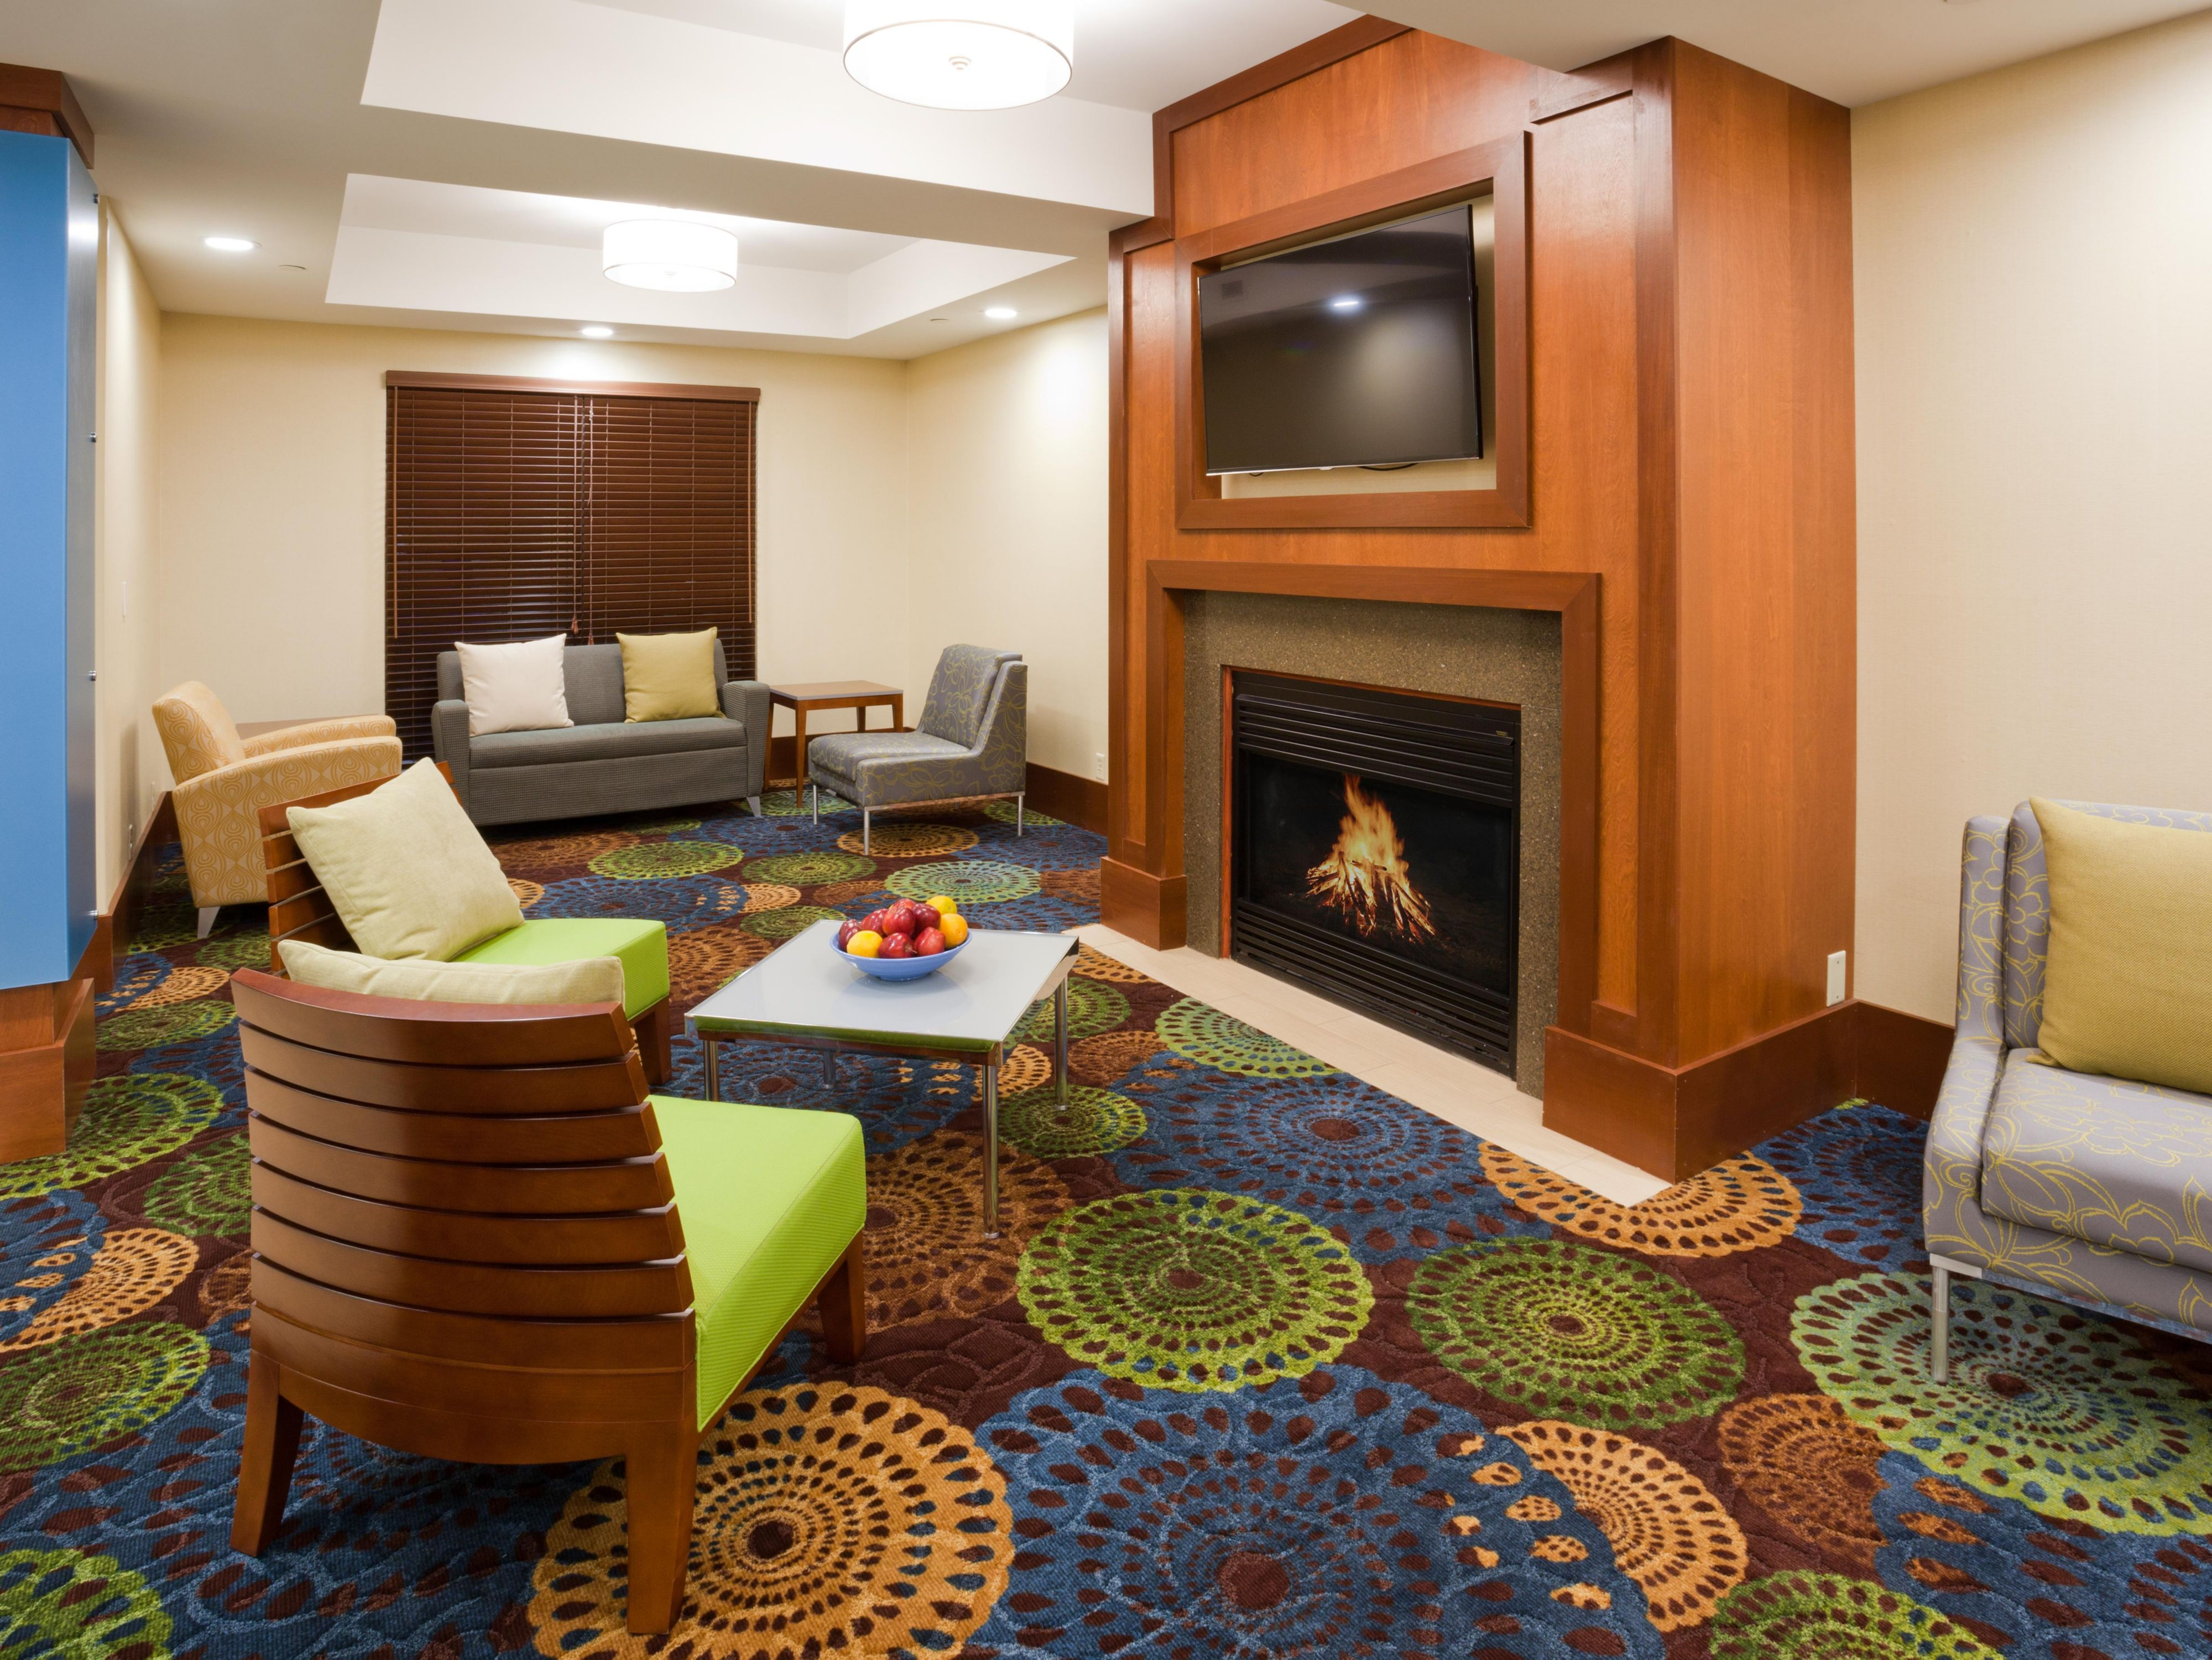 Hotel Lobby with comfortable seating and fireplace